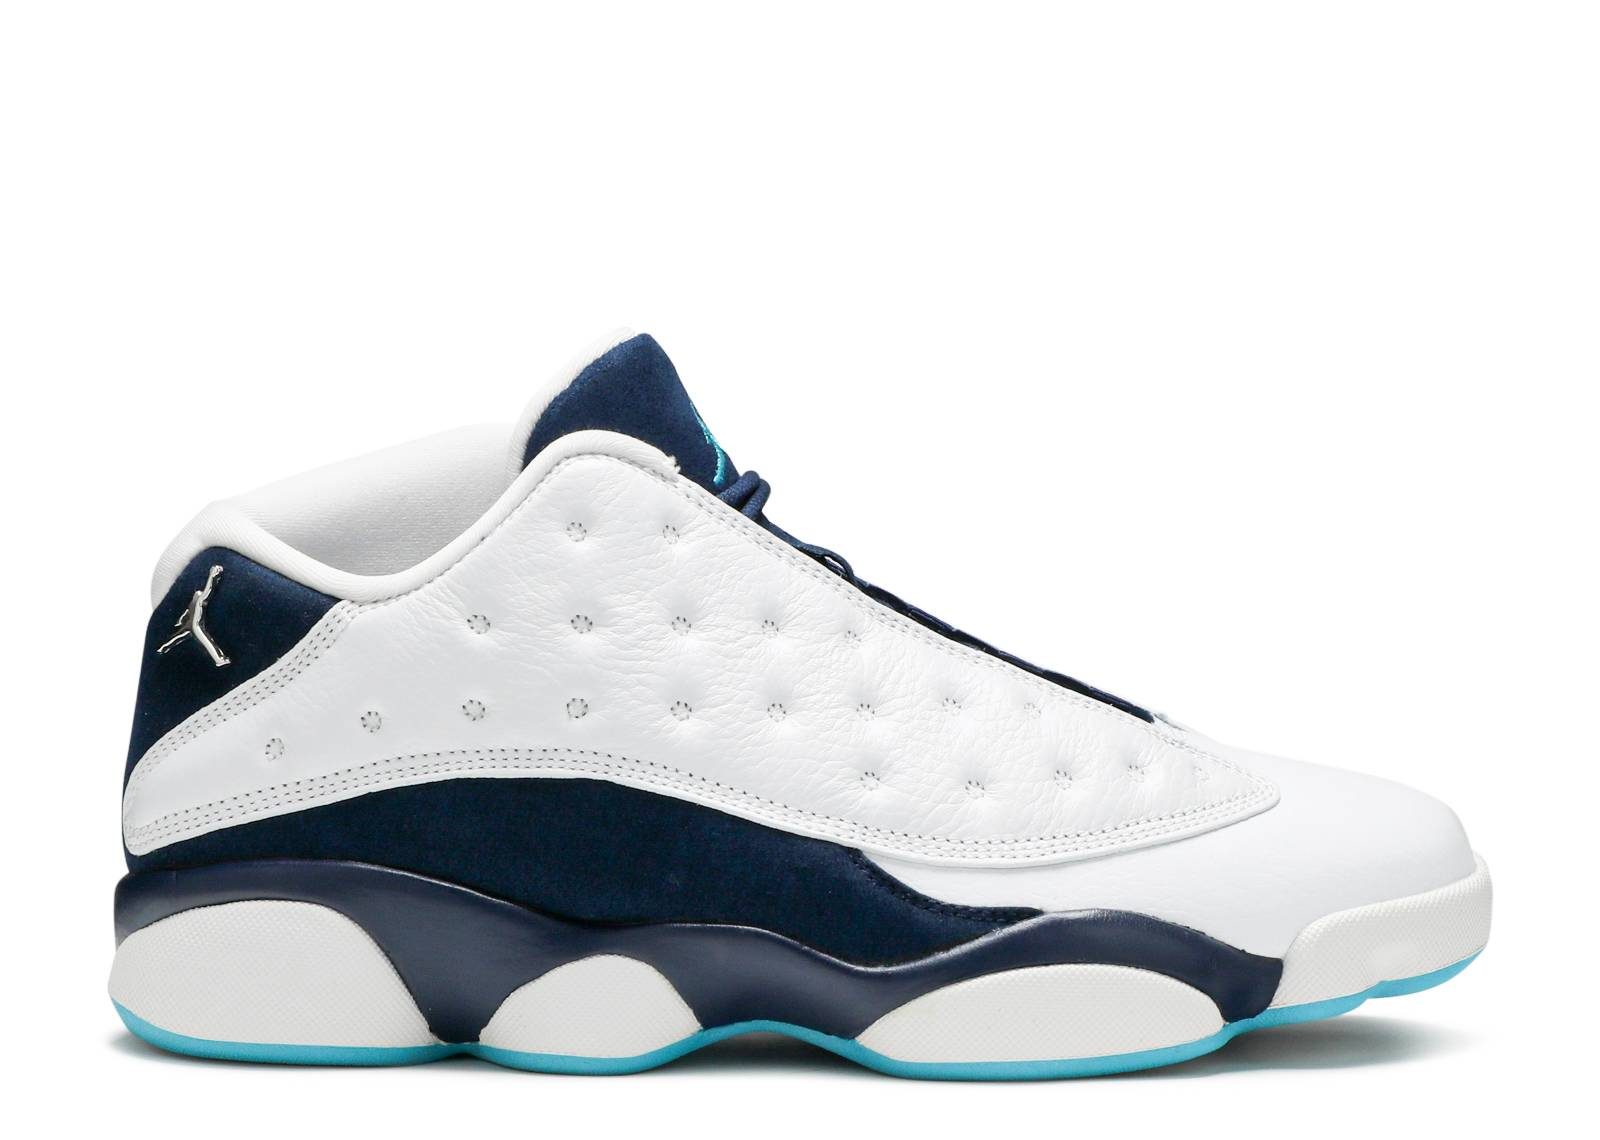 air jordan 13 low hornets buy here pay